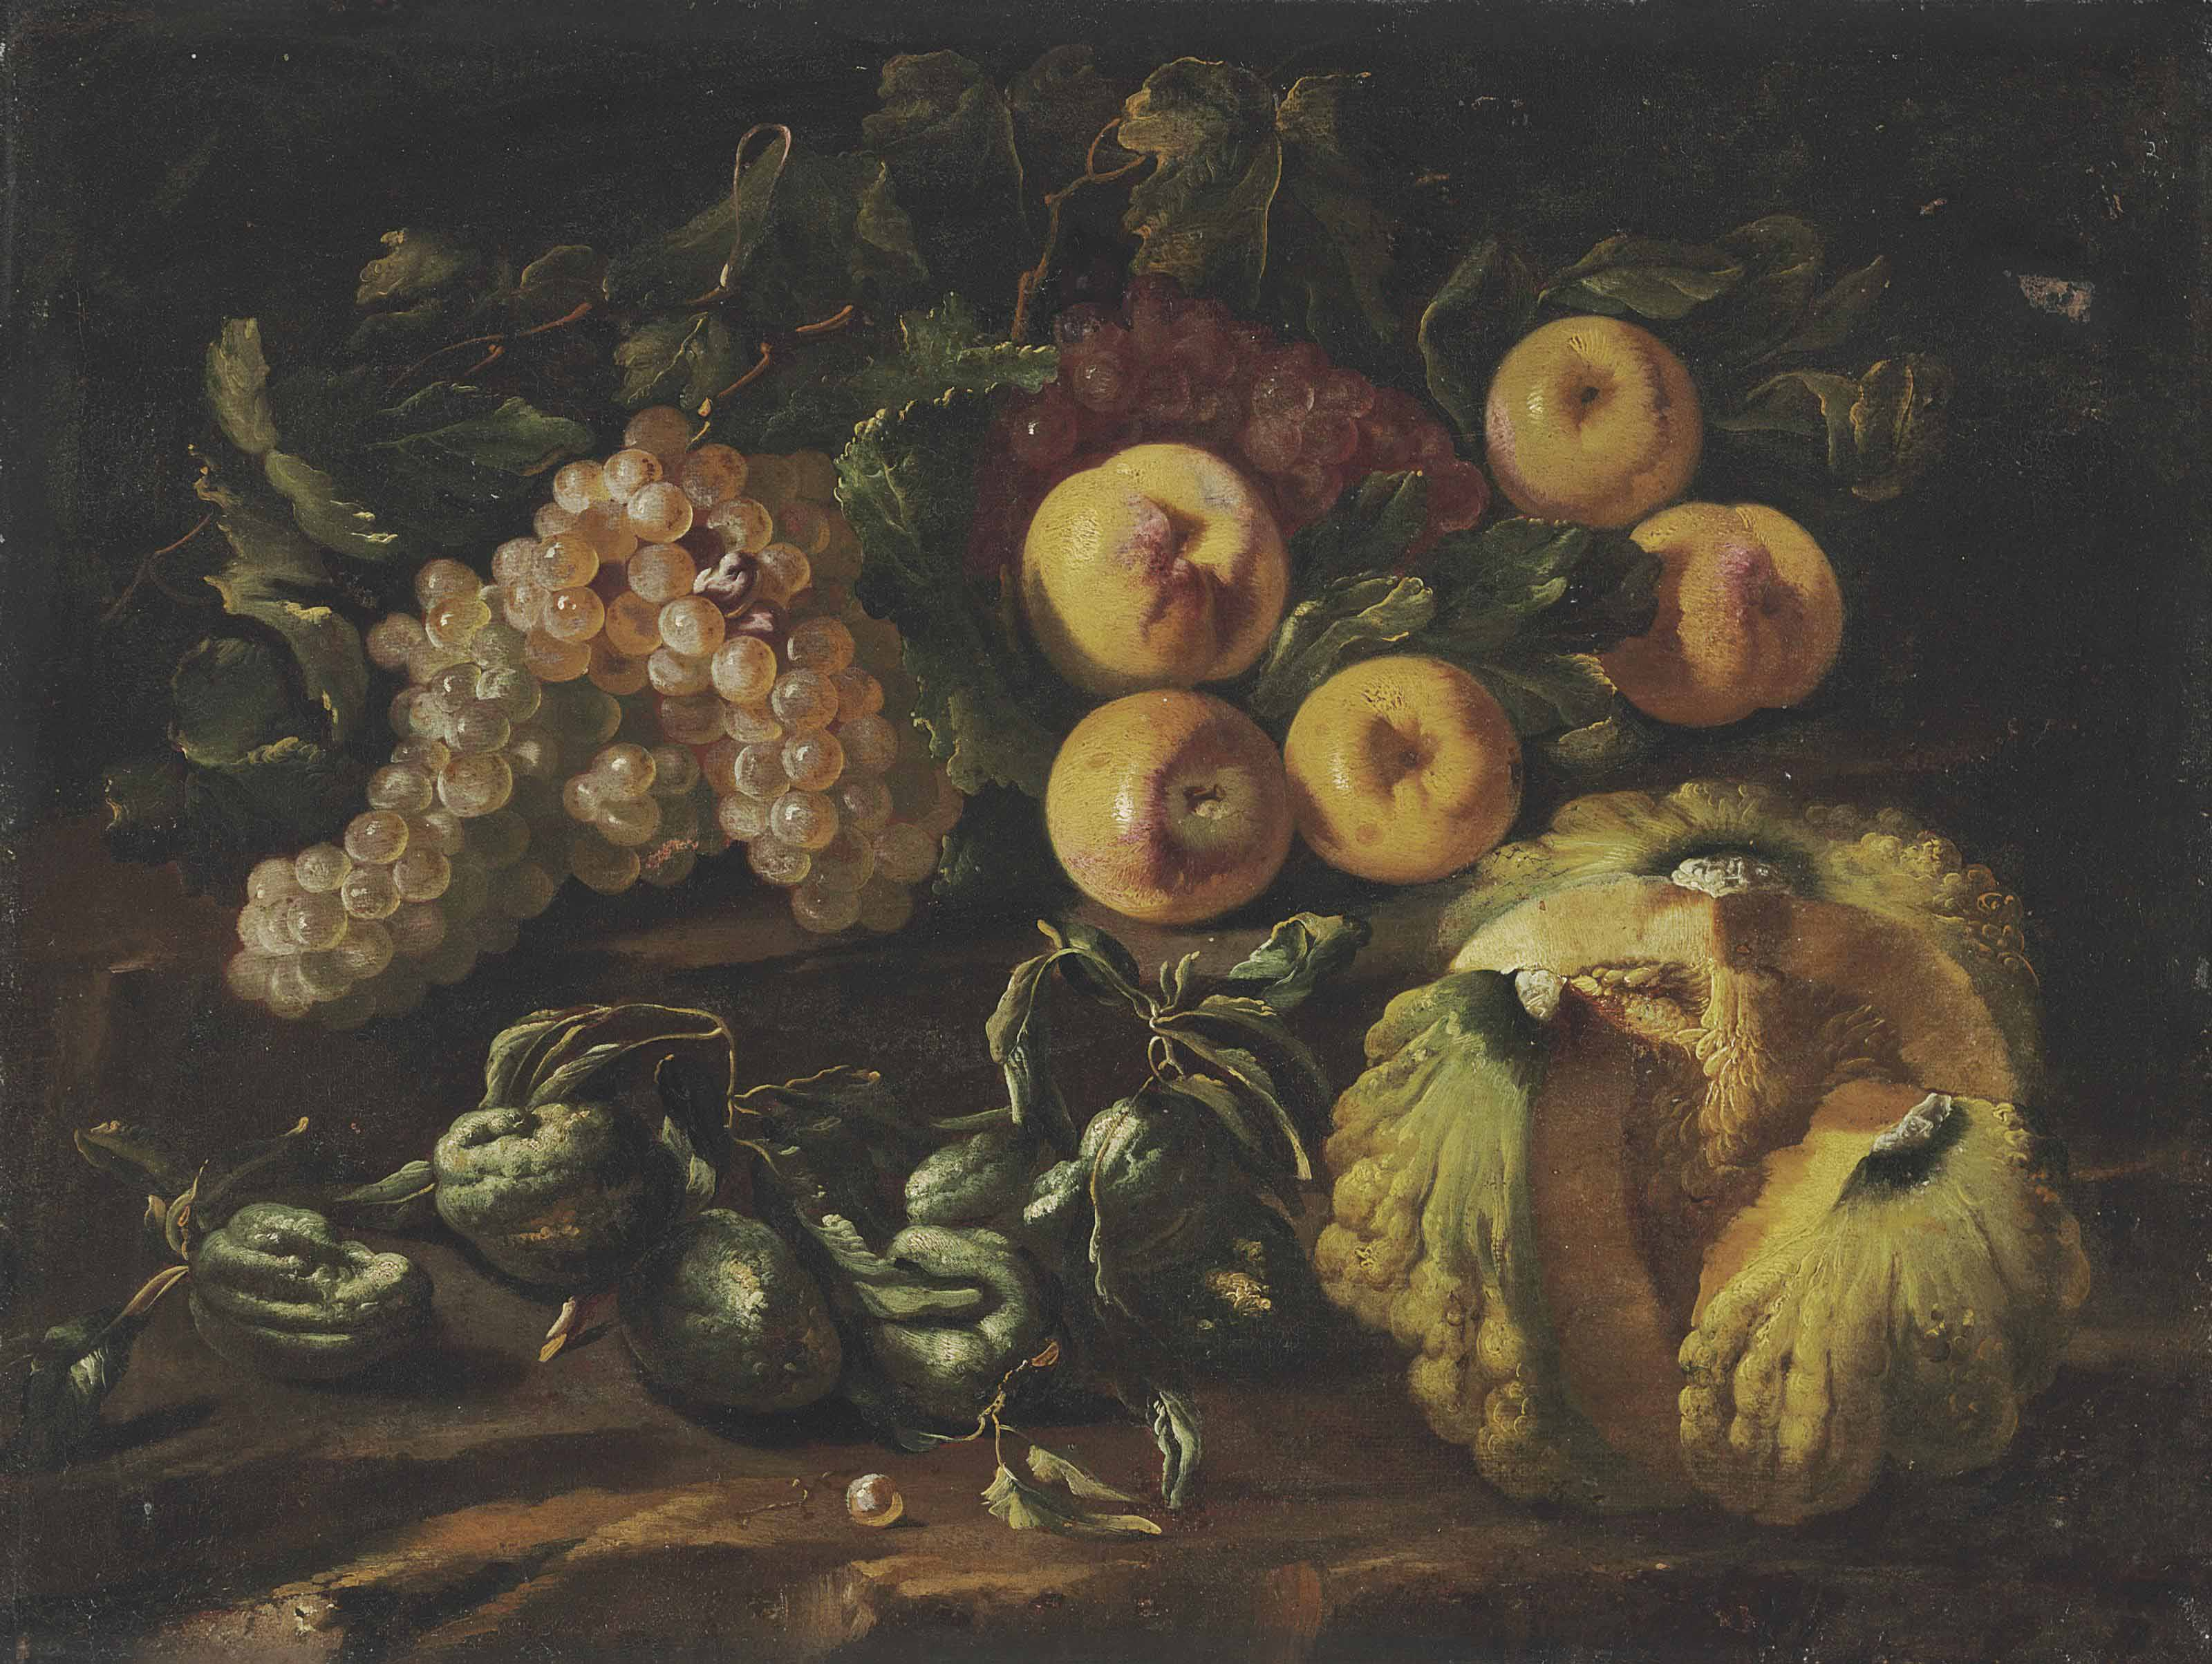 https://www.christies.com/img/LotImages/2014/NYR/2014_NYR_02855_0066_000(bartolomeo_castelli_i_called_lo_spadino_grapes_apples_a_melon_and_othe).jpg